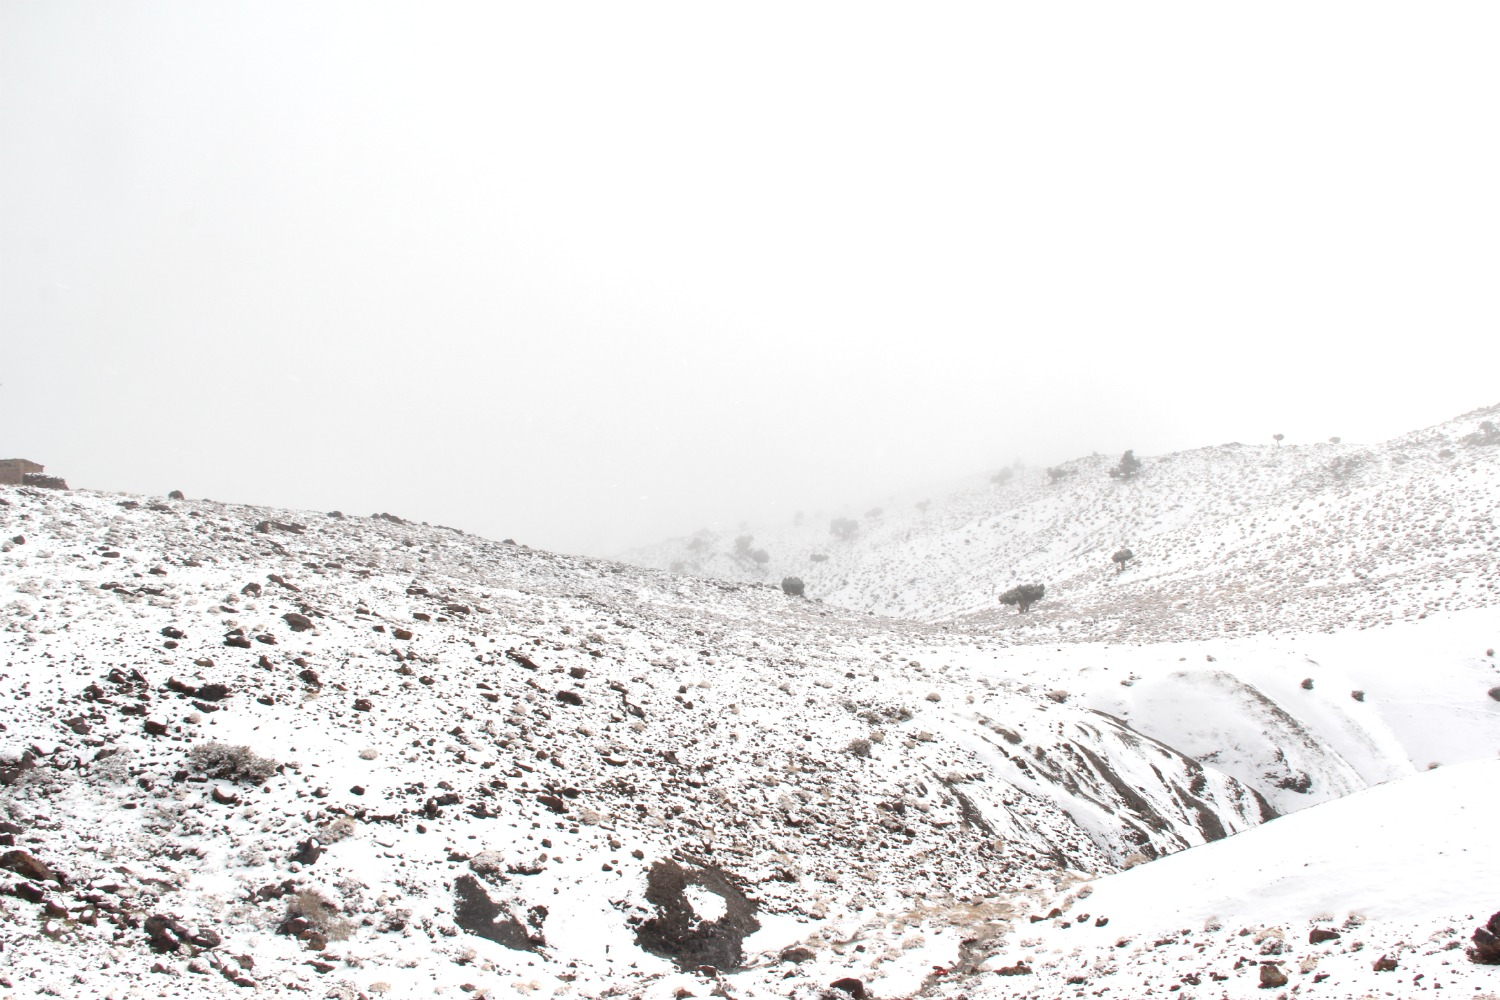 Atlas Mountains - Whiteout